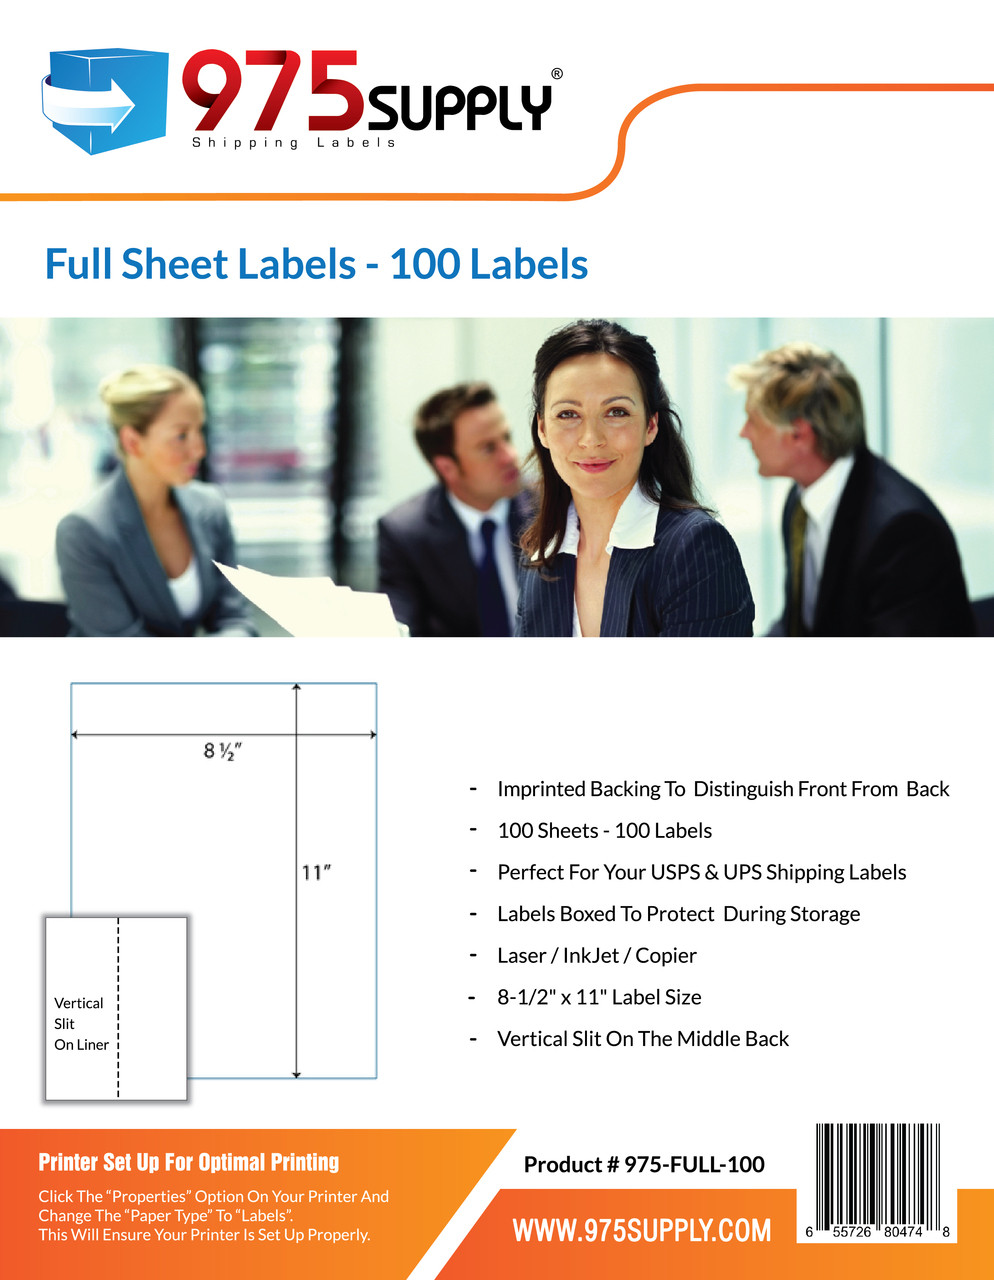 975 Supply Brand Labels - Full Sheet Labels - 8-1/2